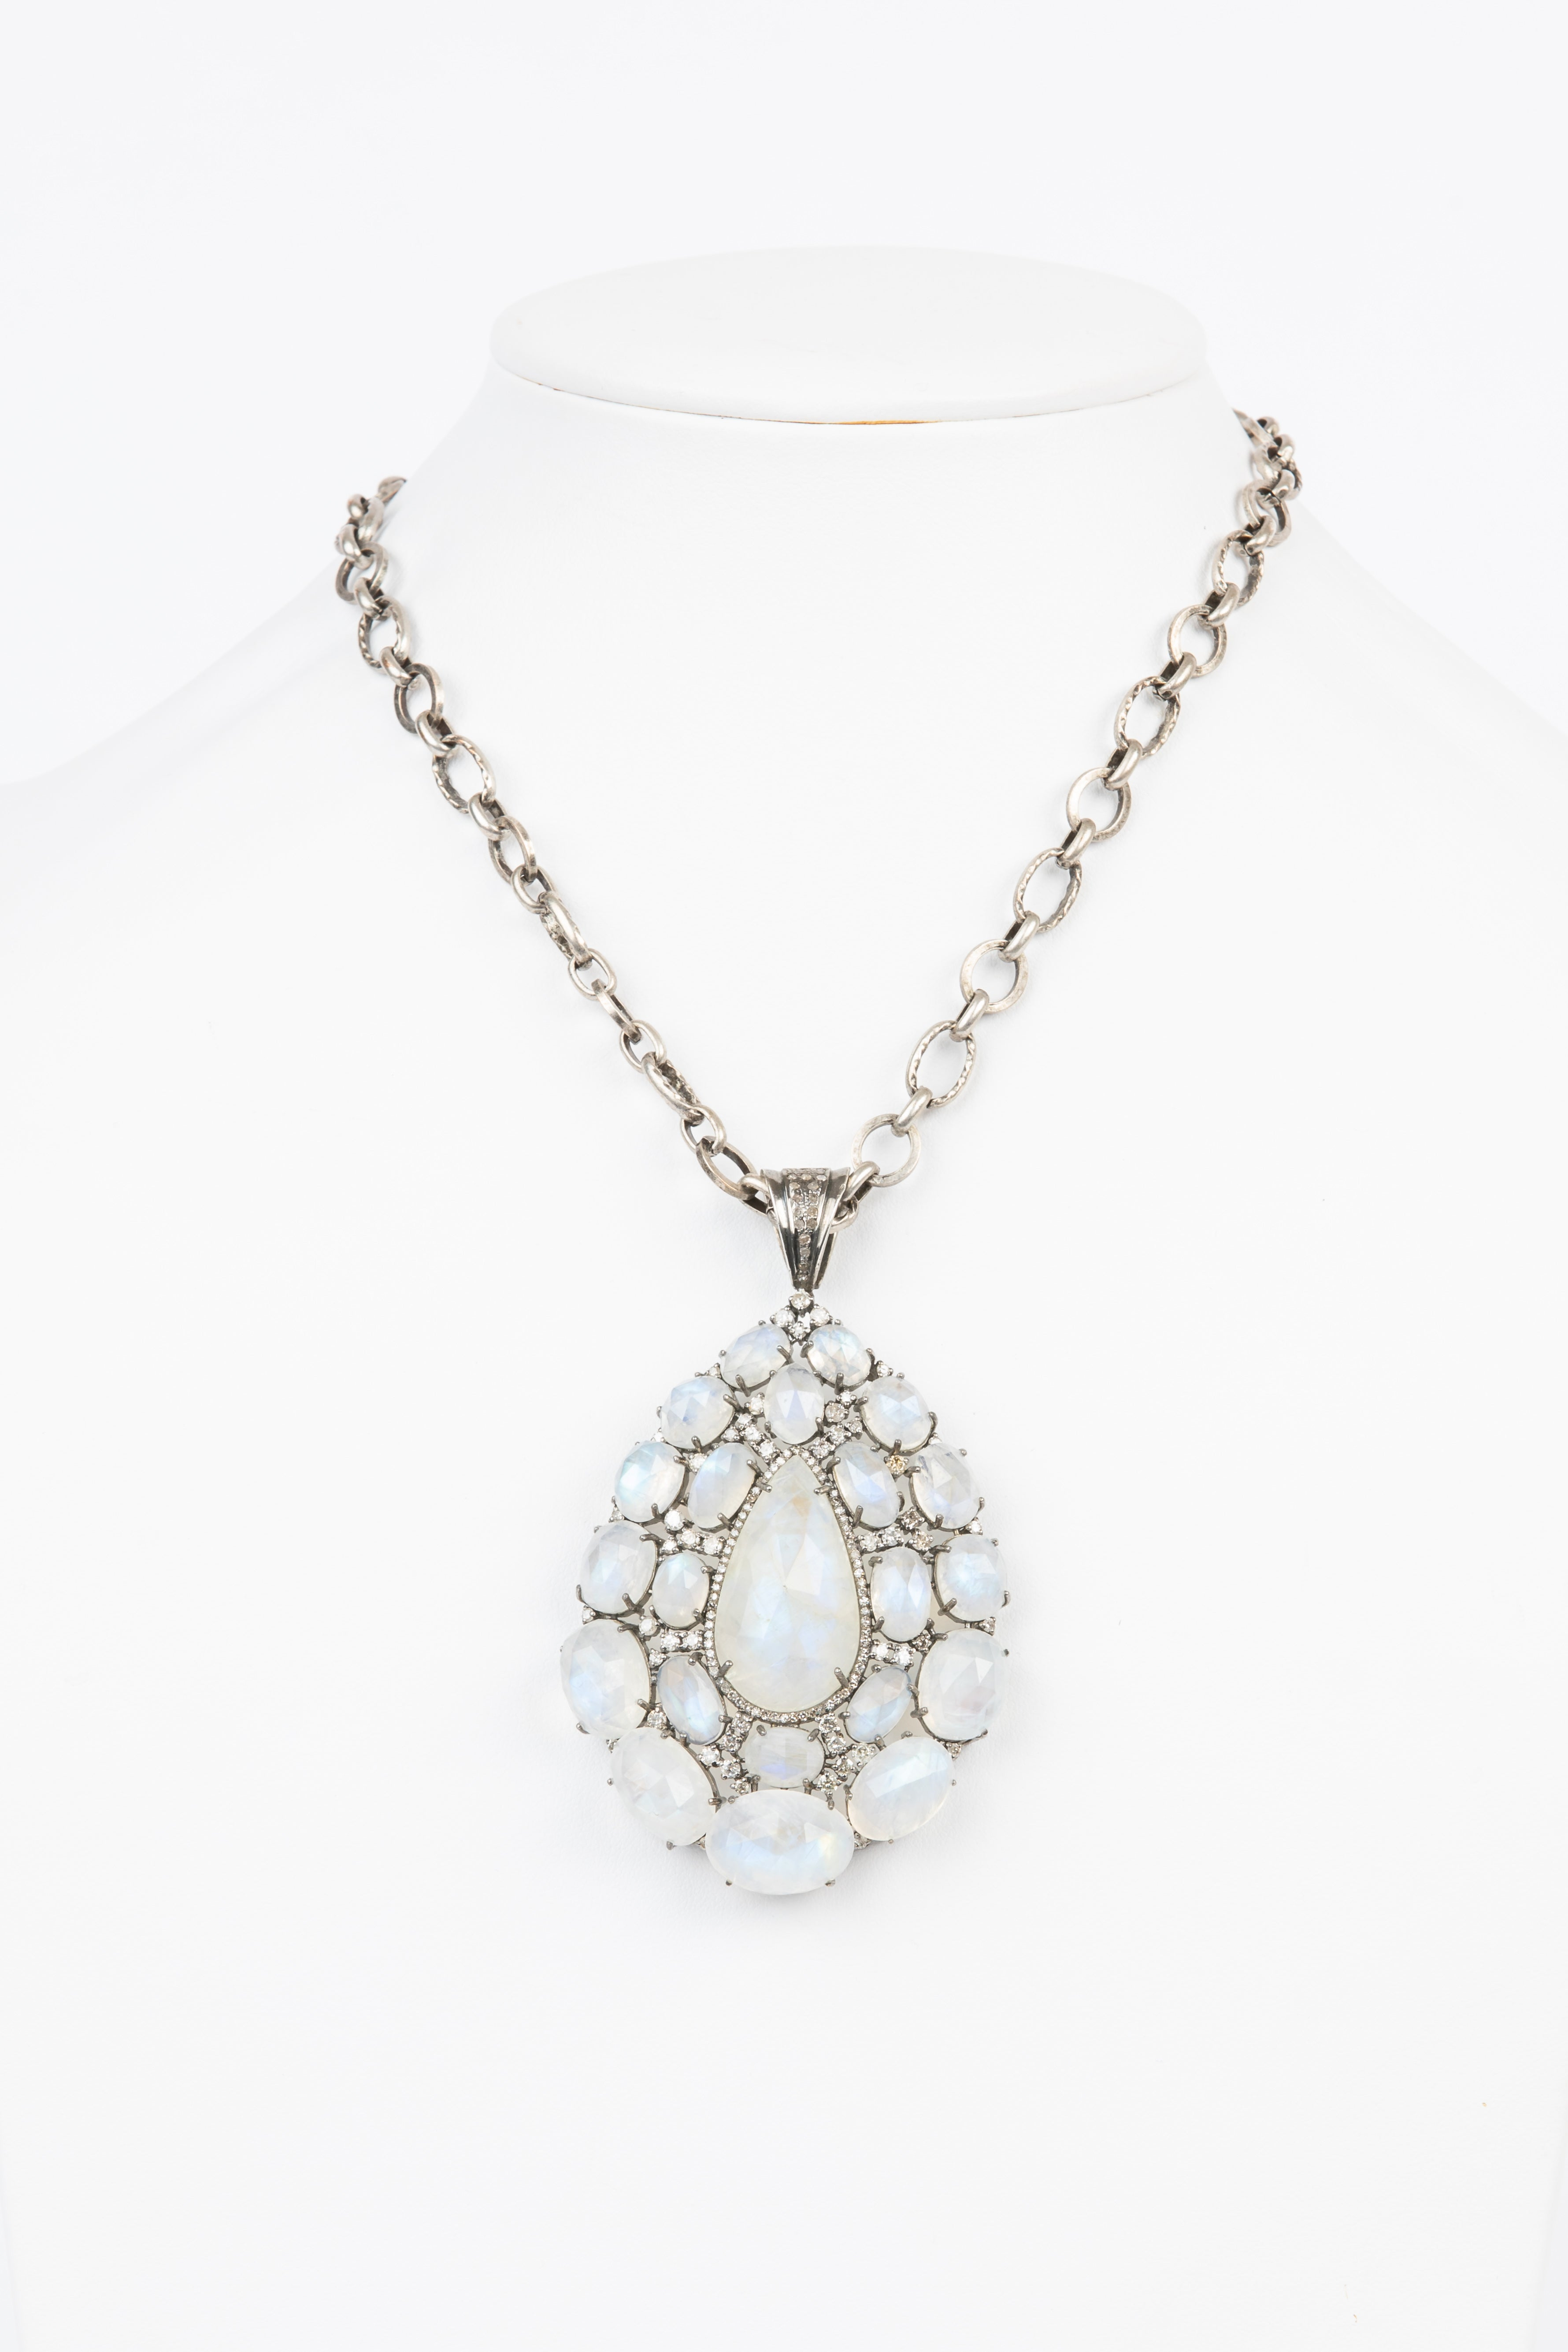 Pave Diamond, Moonstone Necklace